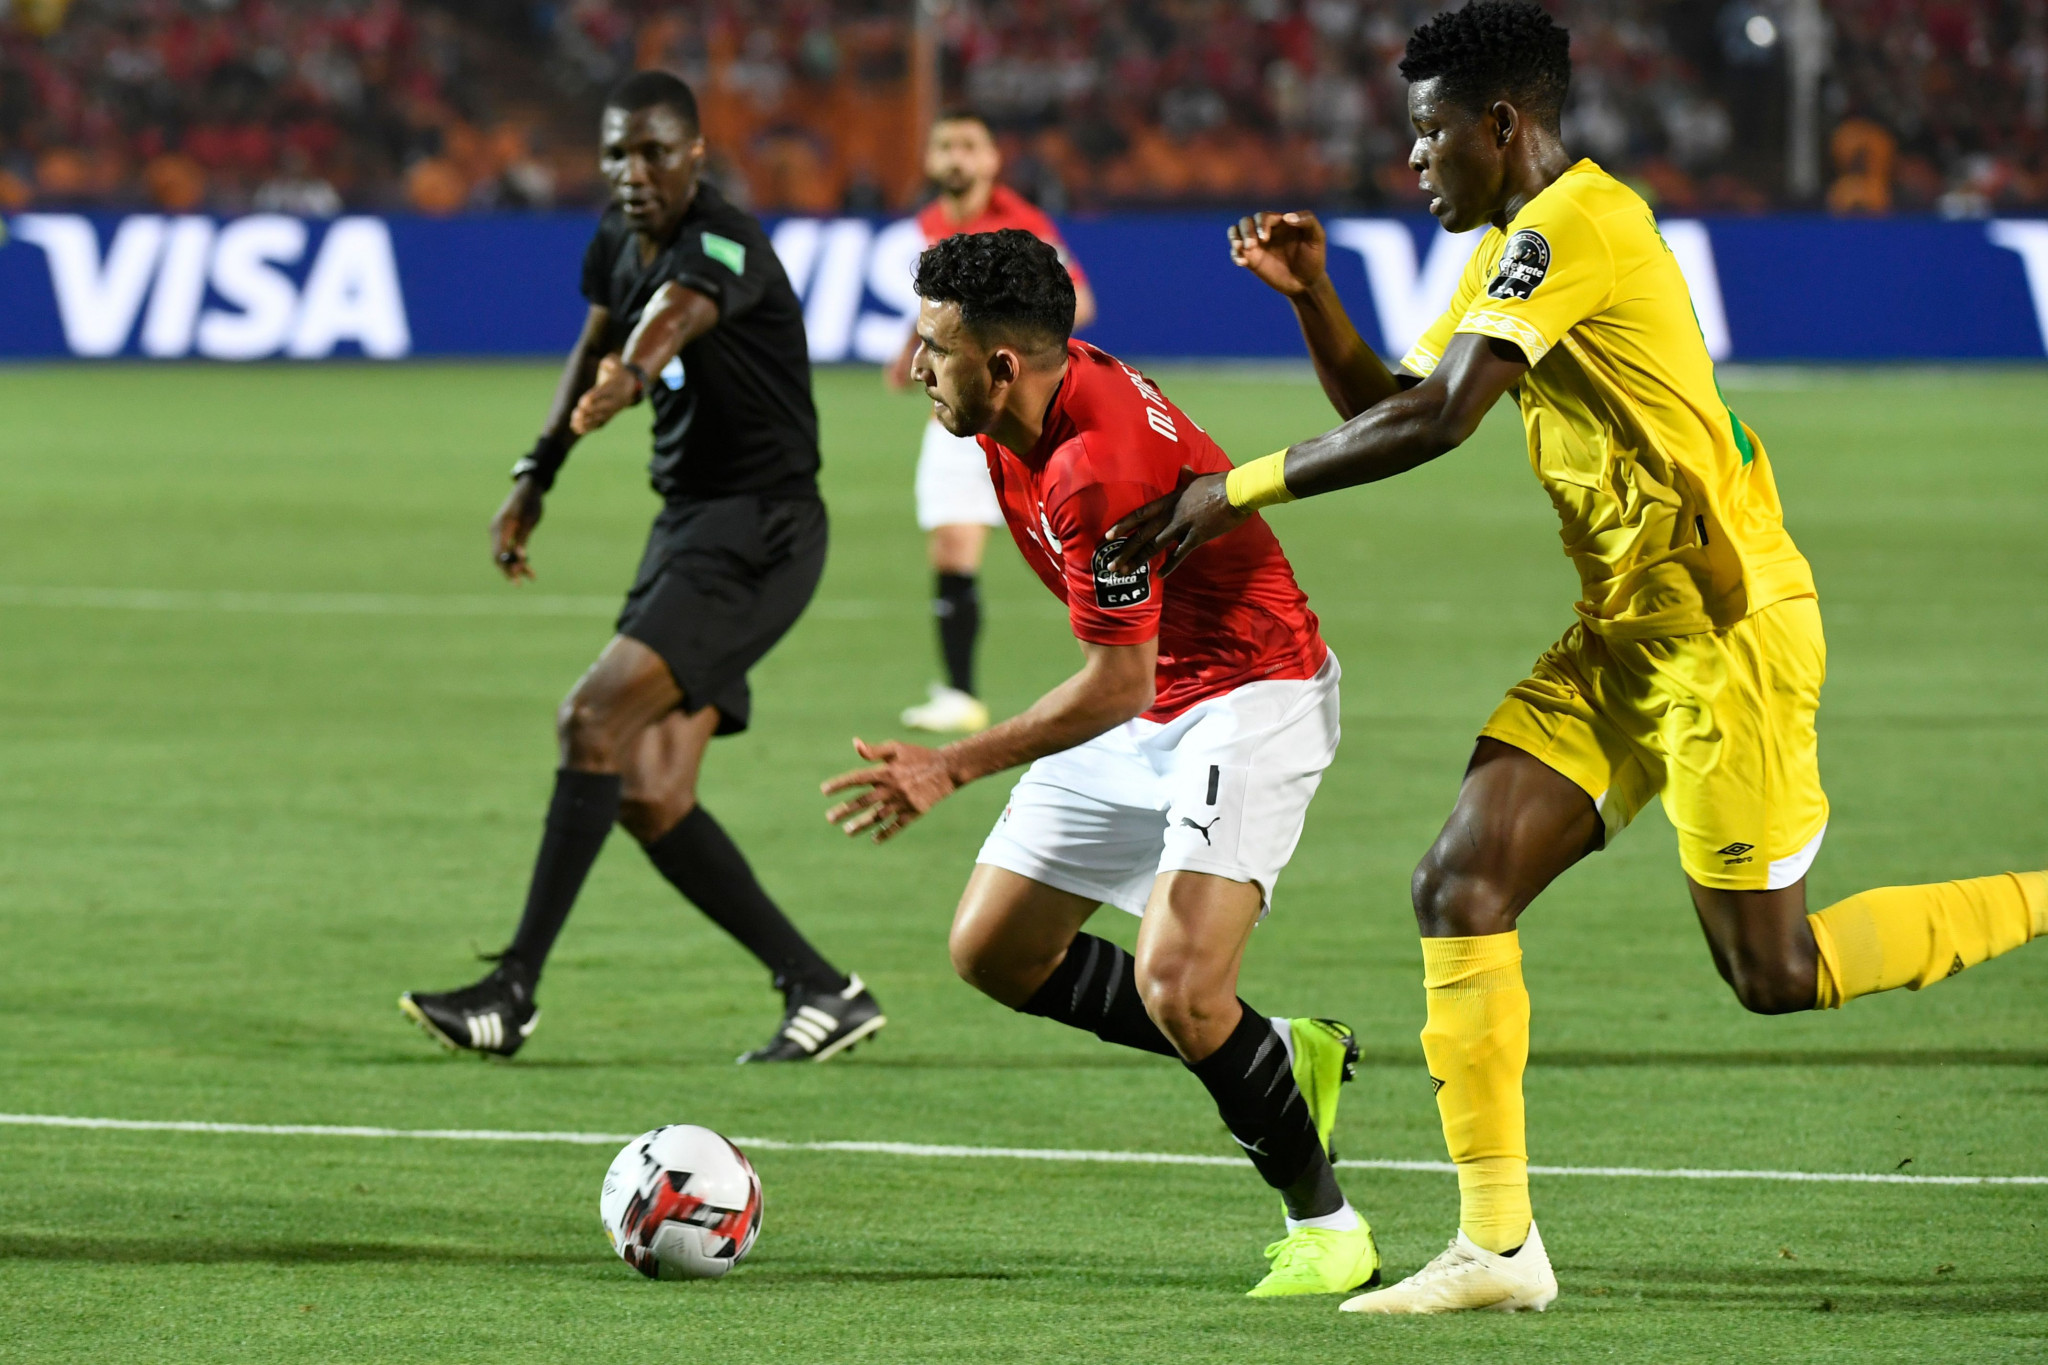 Egypt beat Zimbabwe 1-0 in Cairo to get their campaign off to a winning start ©Getty Images